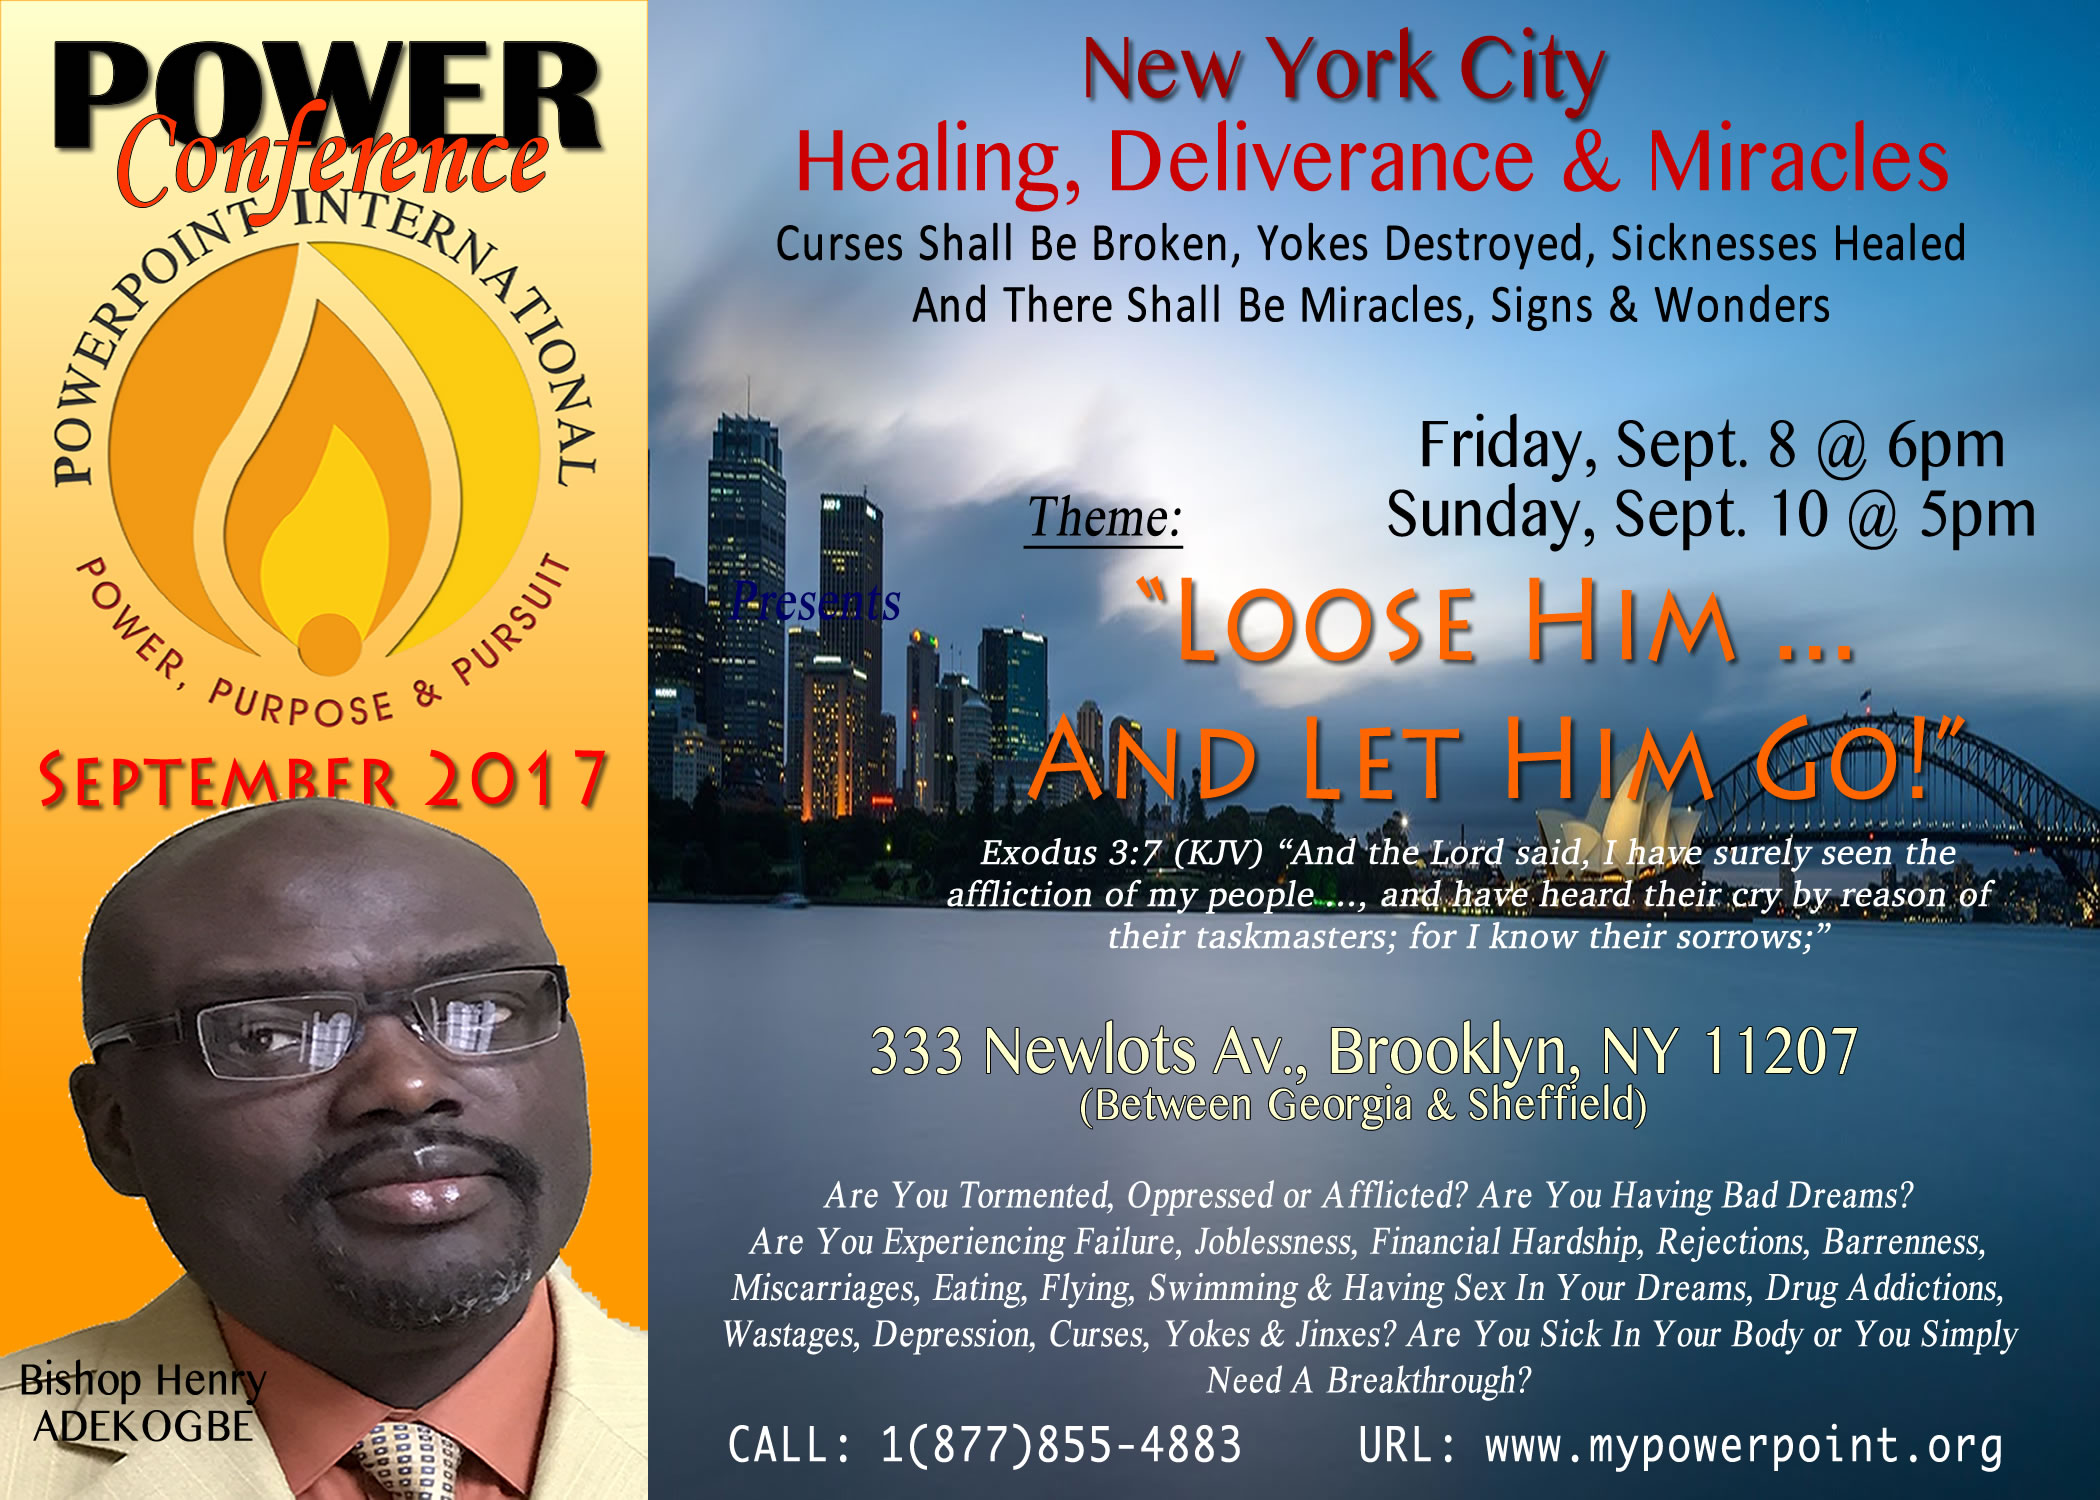 NYC Healing, Deliverance & Miracles Conference 2017